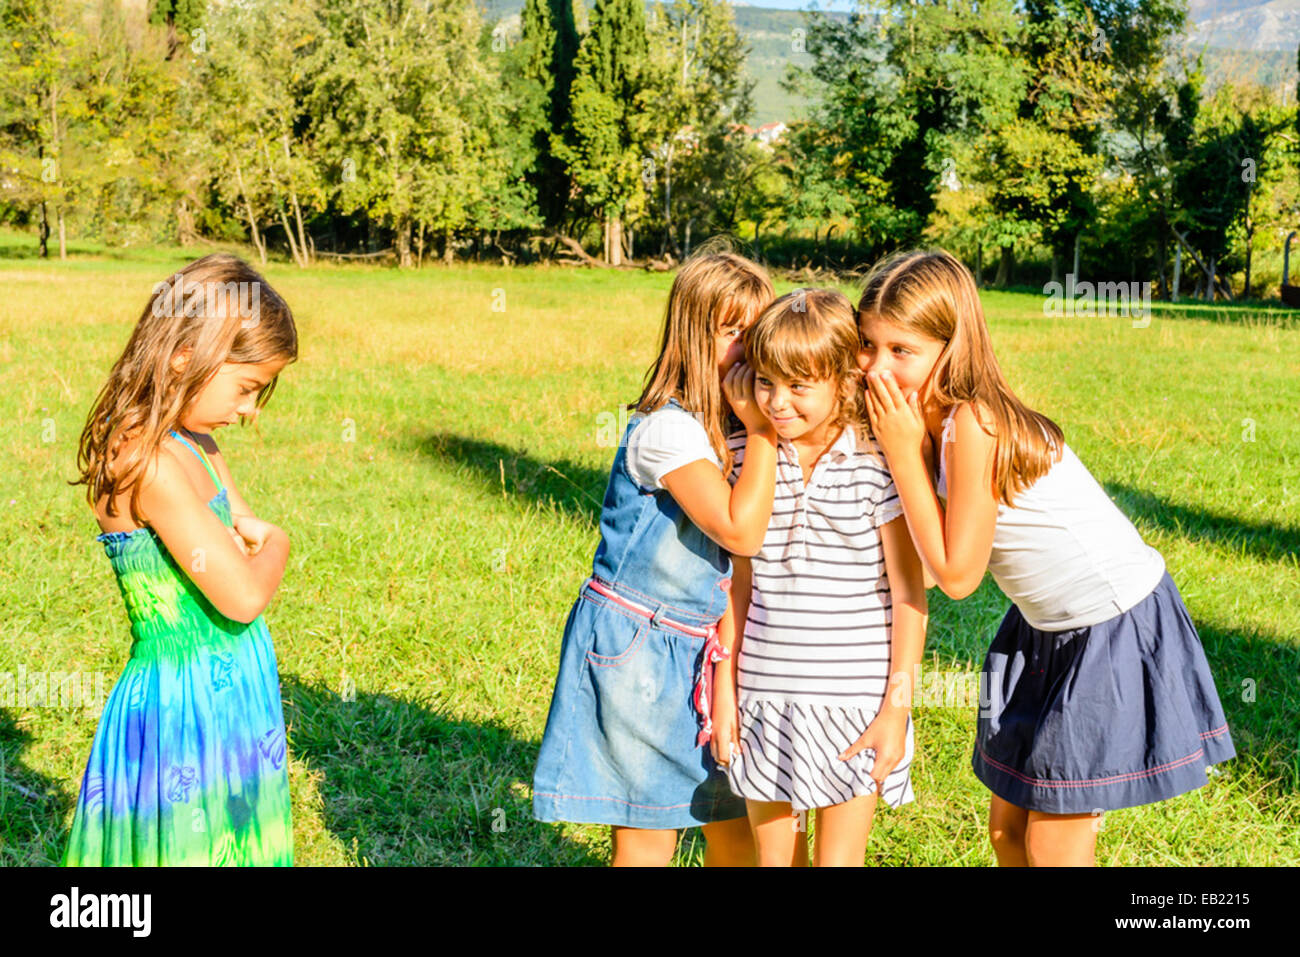 Four little girls  playing together and are whispering secrets - Stock Image